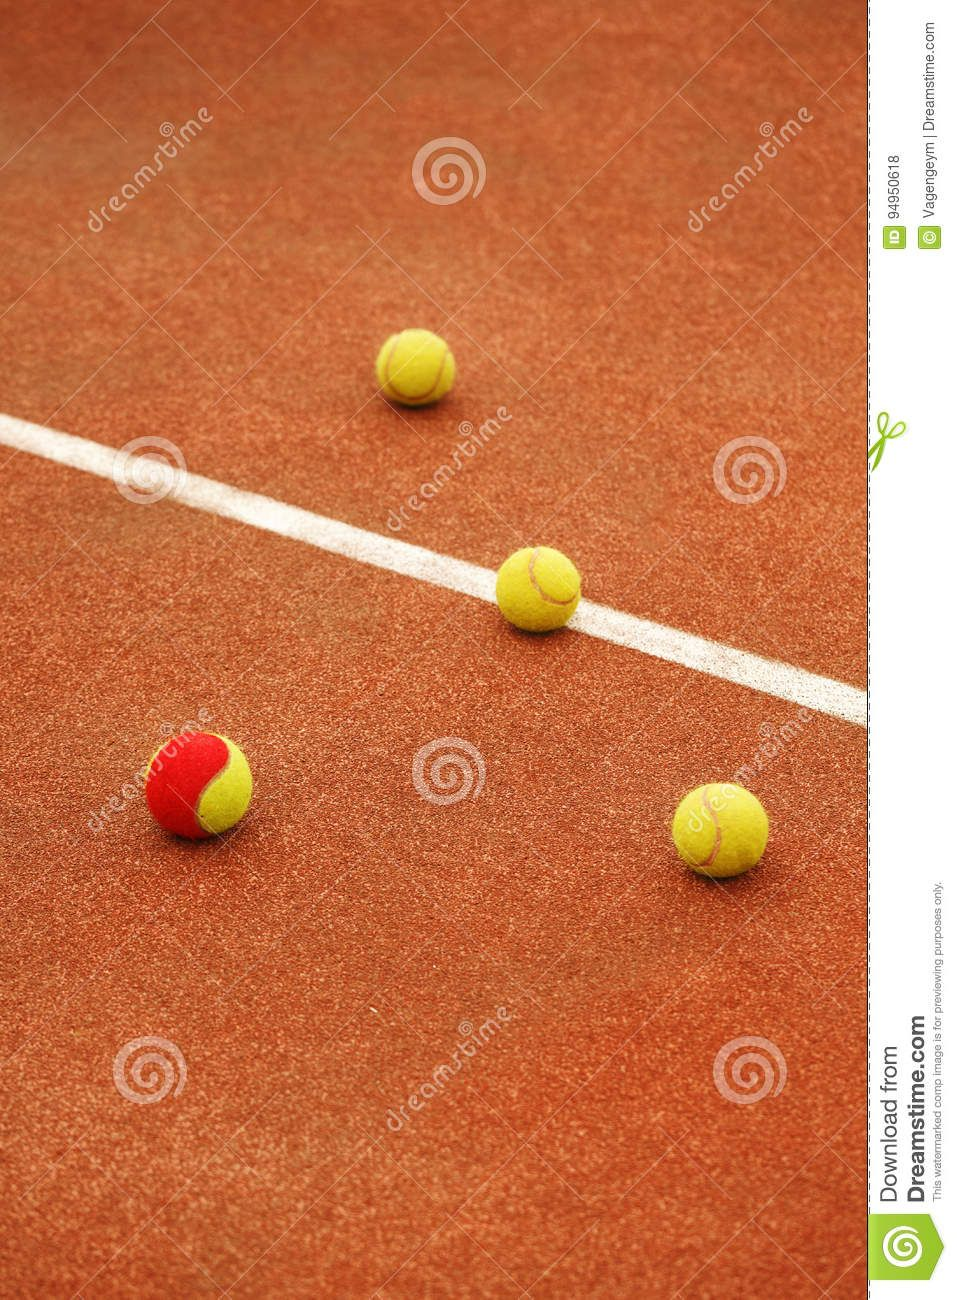 Ball On Tennis Court Background Download From Over 61 Million High Quality Stock Photos Images Vectors Sign Up For Free Today Image 94950618